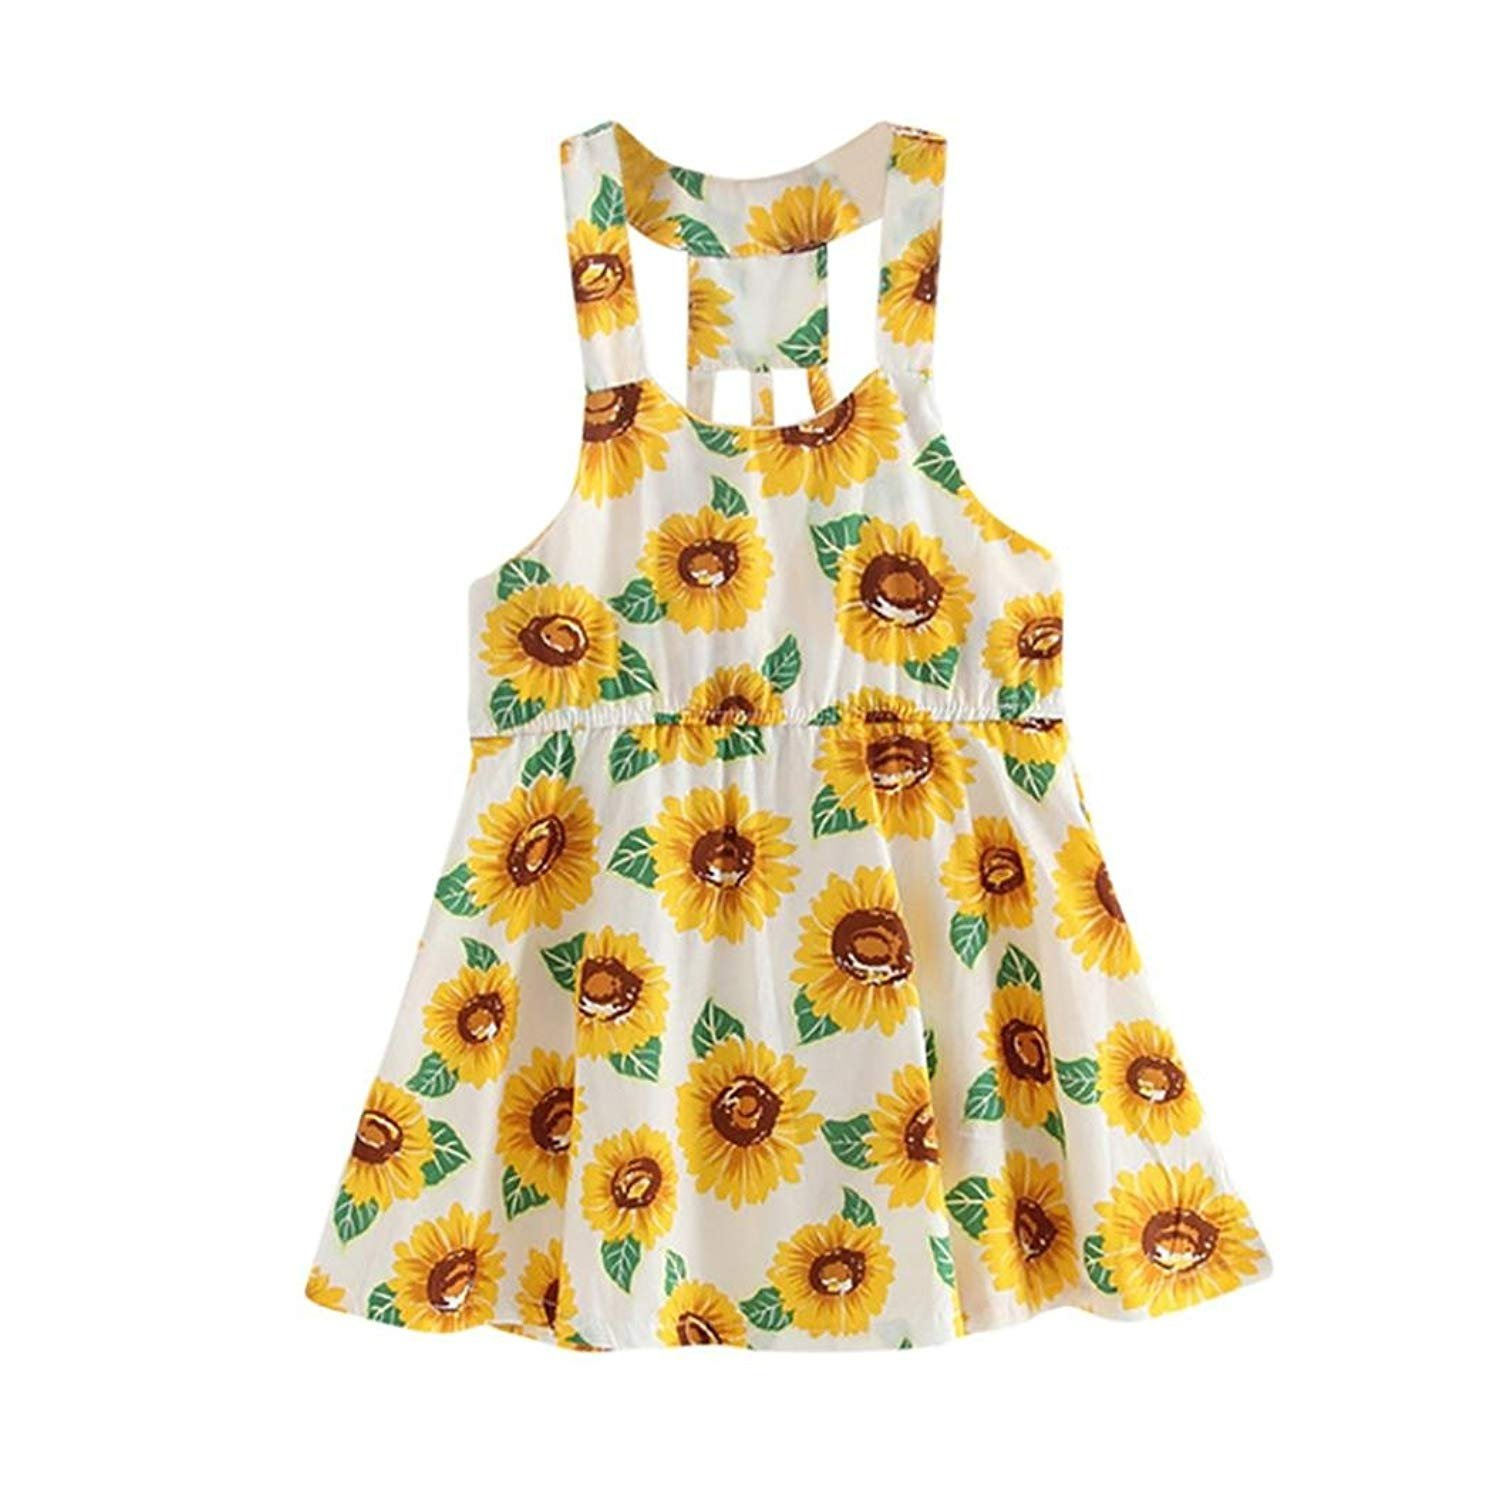 YOUNGER TREE 2018 Summer Casual Little Girl Sunflower Print Backless Sleeveless Dress Sundress Clothes for Kids Toddler Baby (White, 18-24 Months)